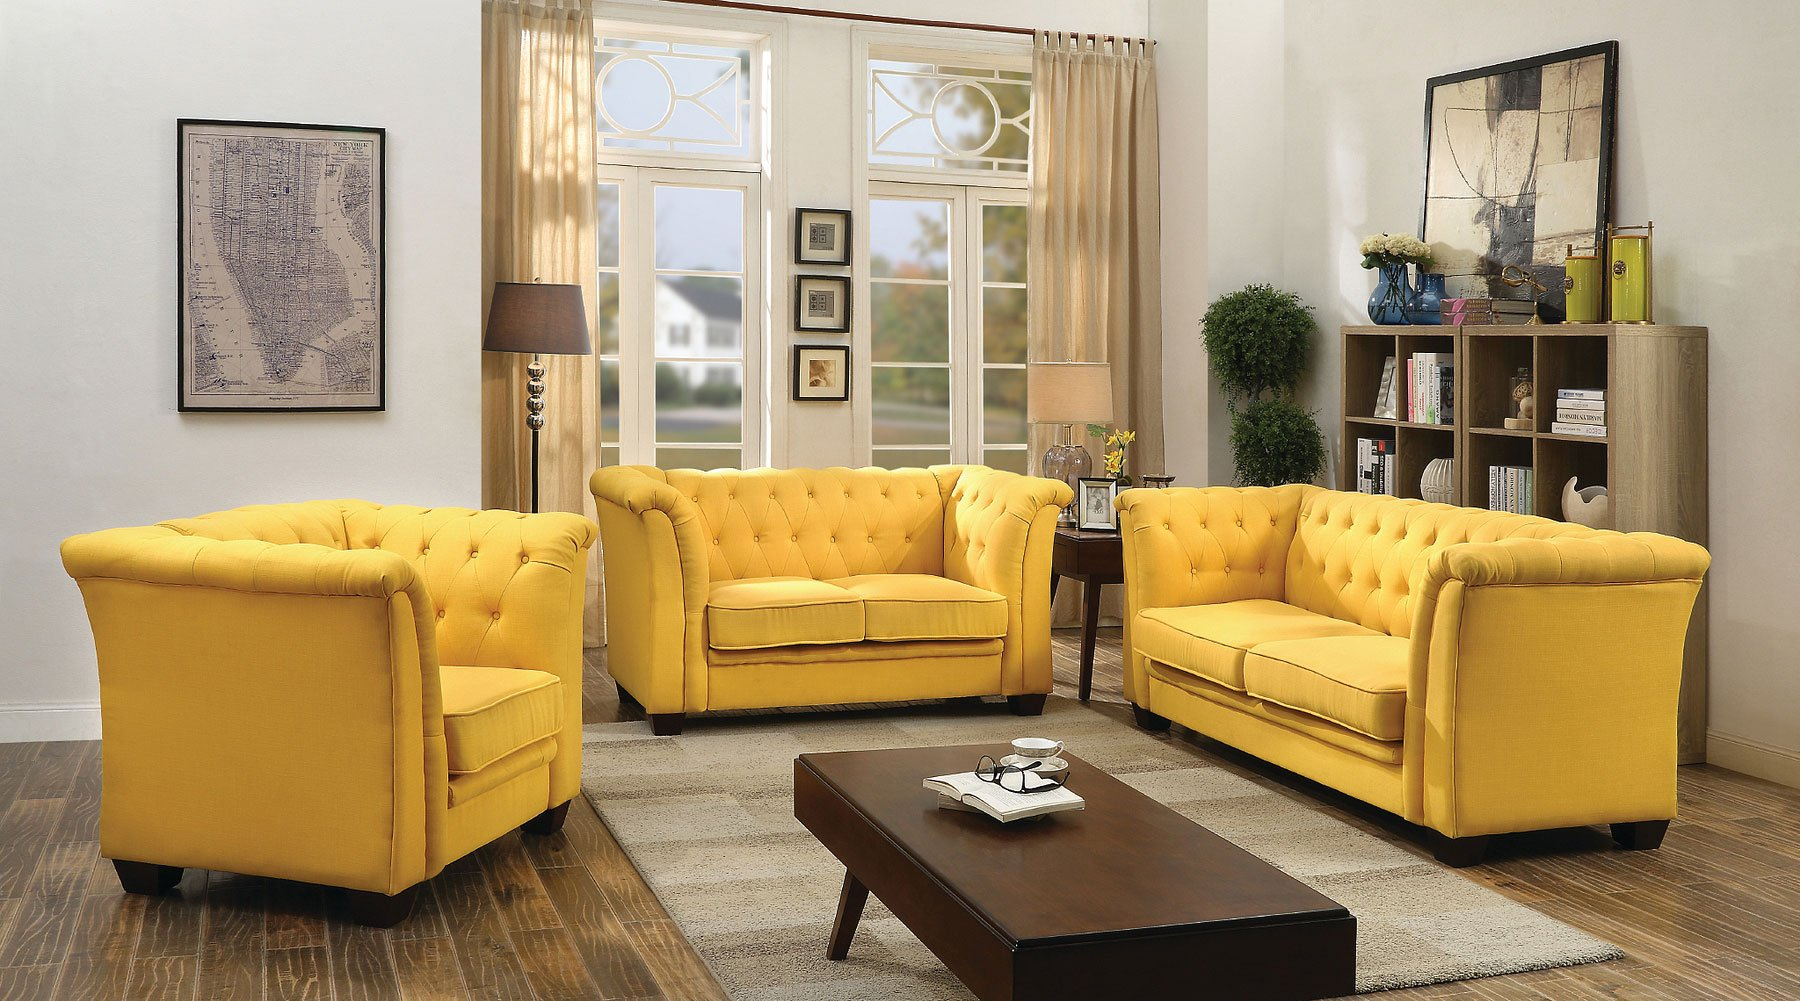 G322 Tufted Living Room Set (Yellow)